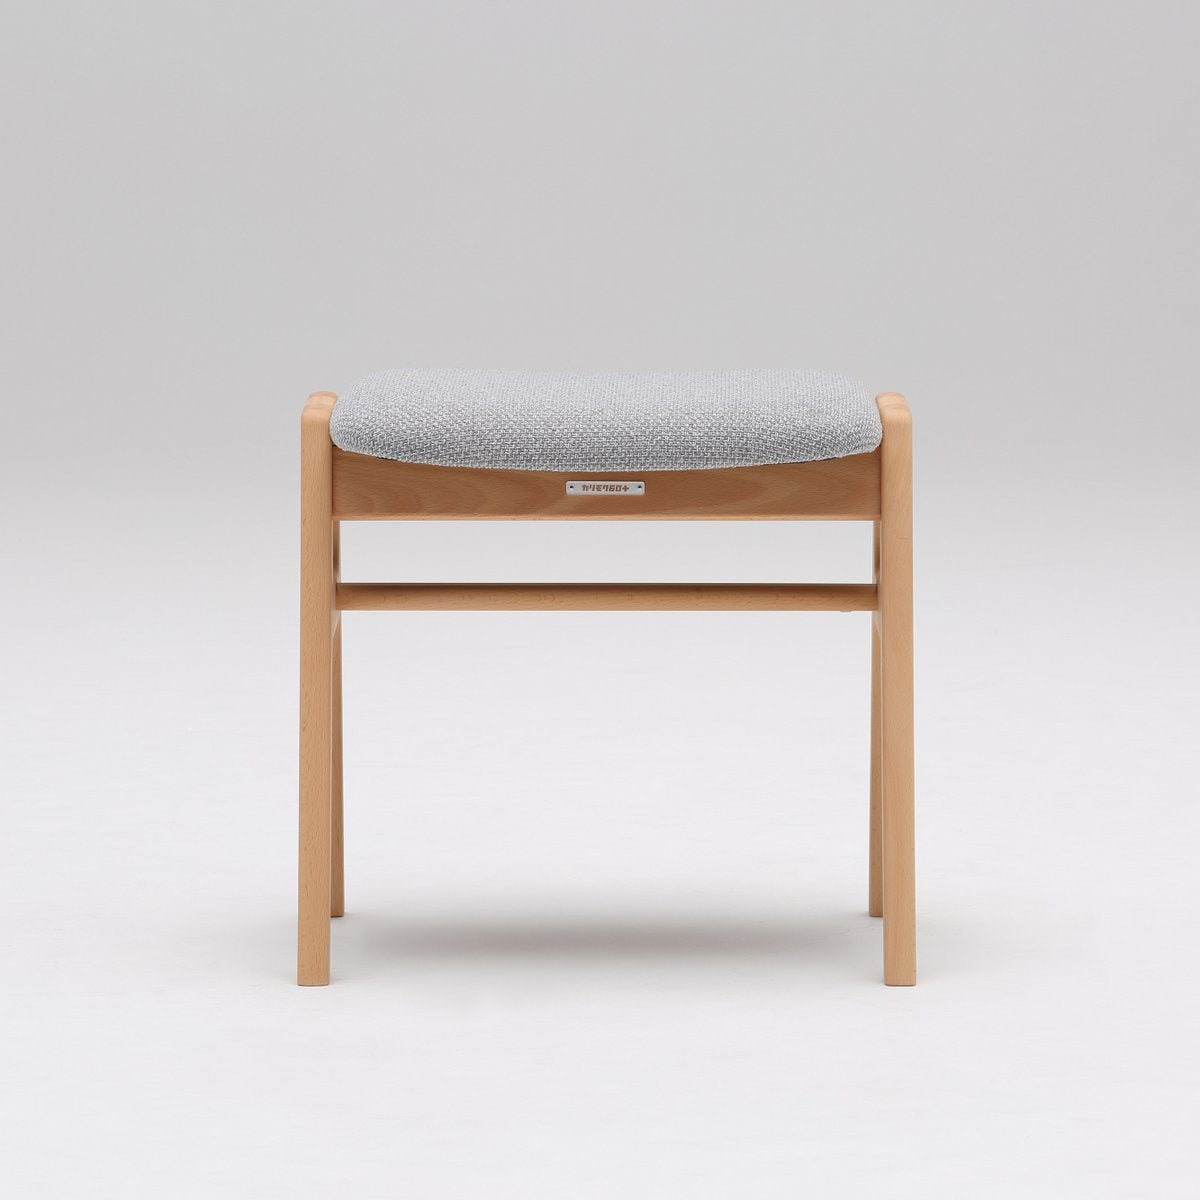 stacking stool mist gray - Stool - Karimoku60